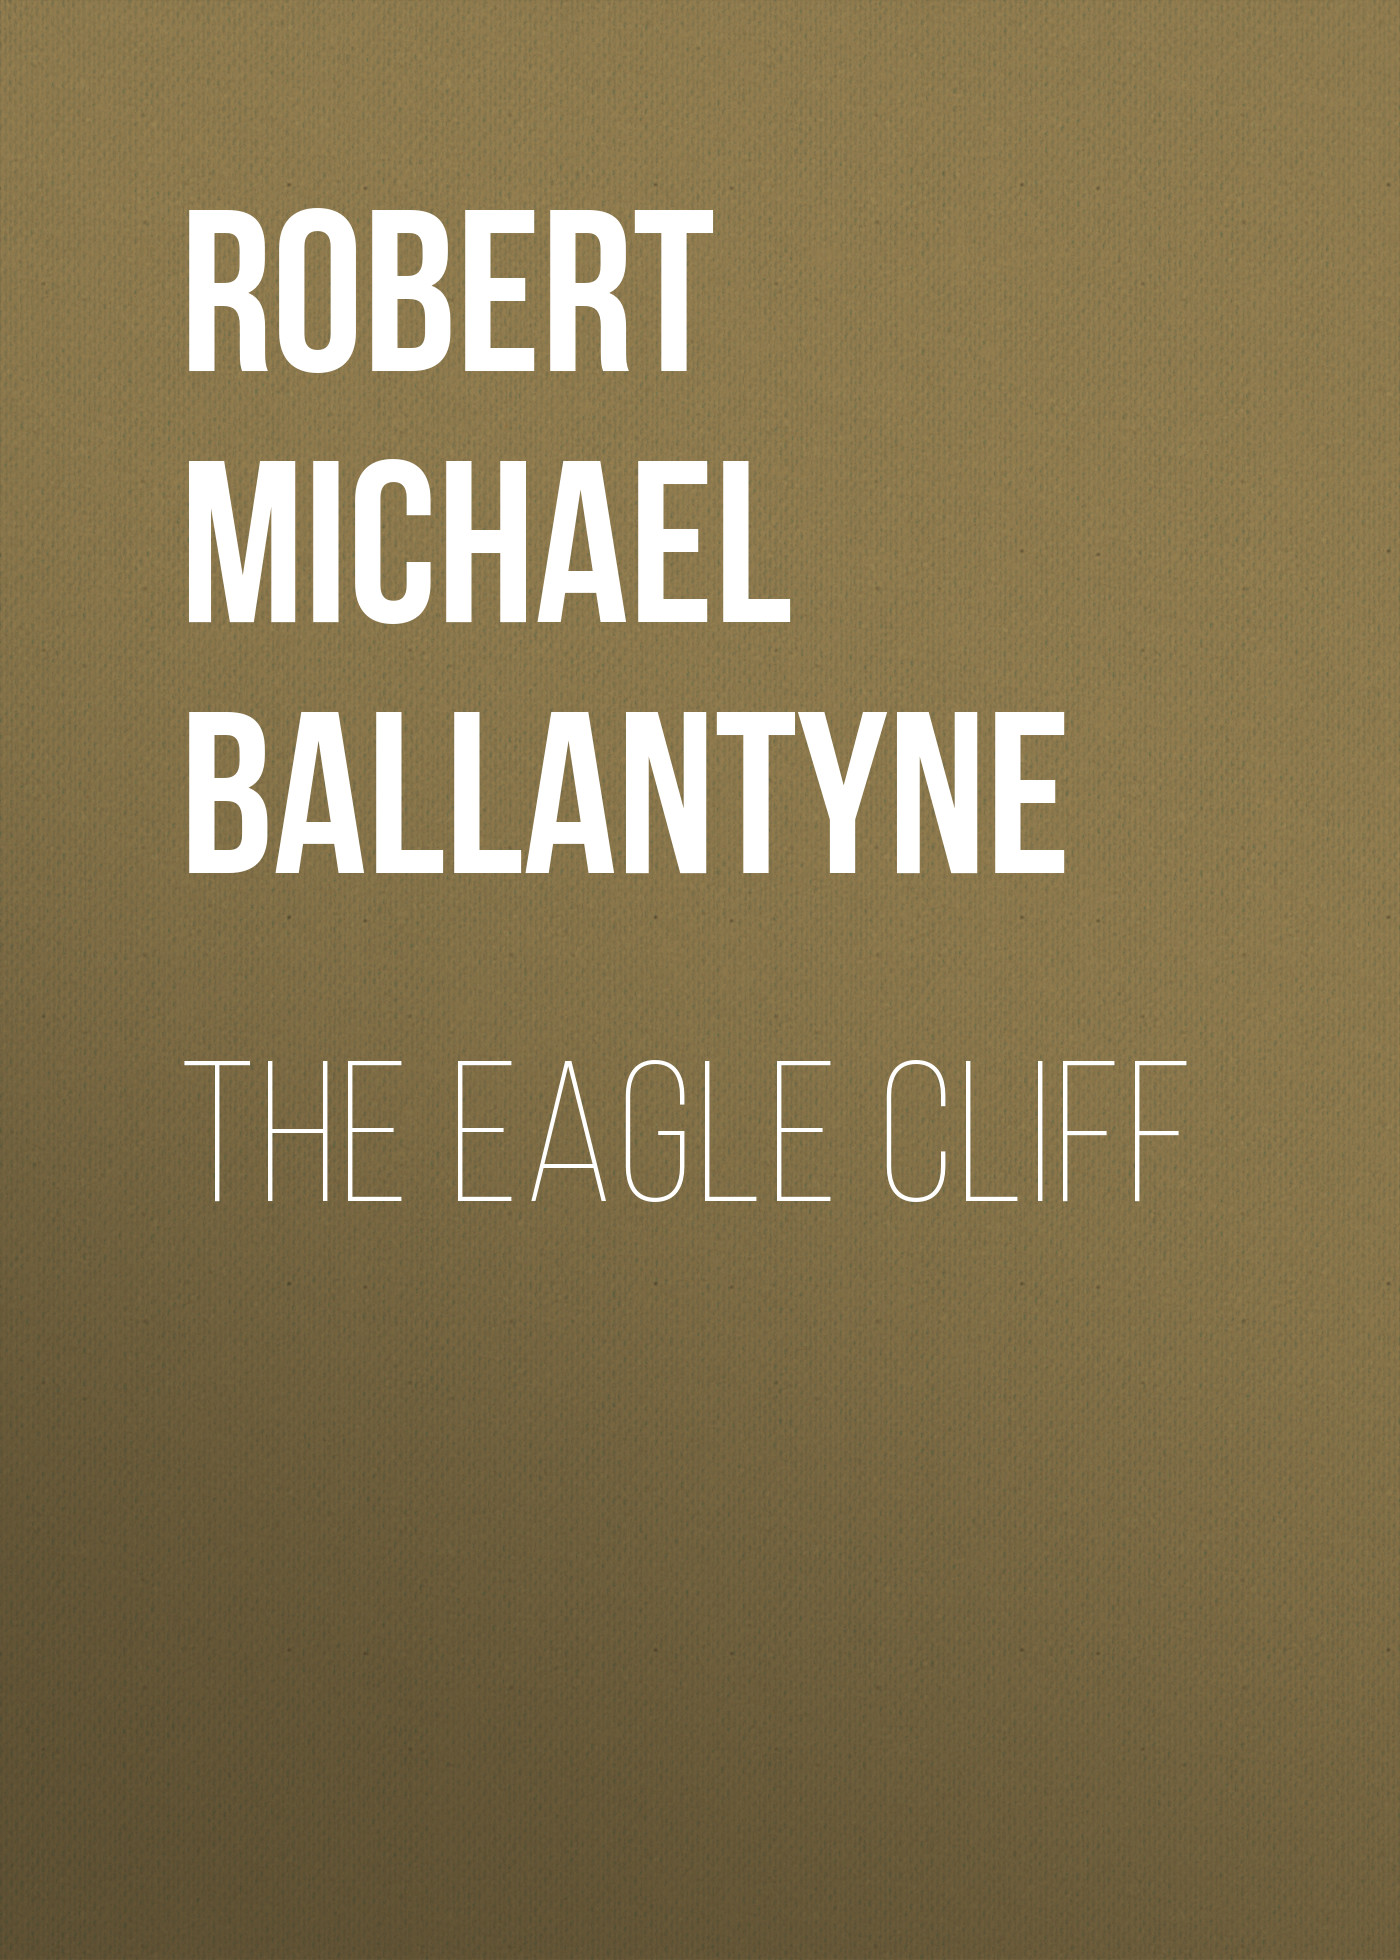 лучшая цена Robert Michael Ballantyne The Eagle Cliff